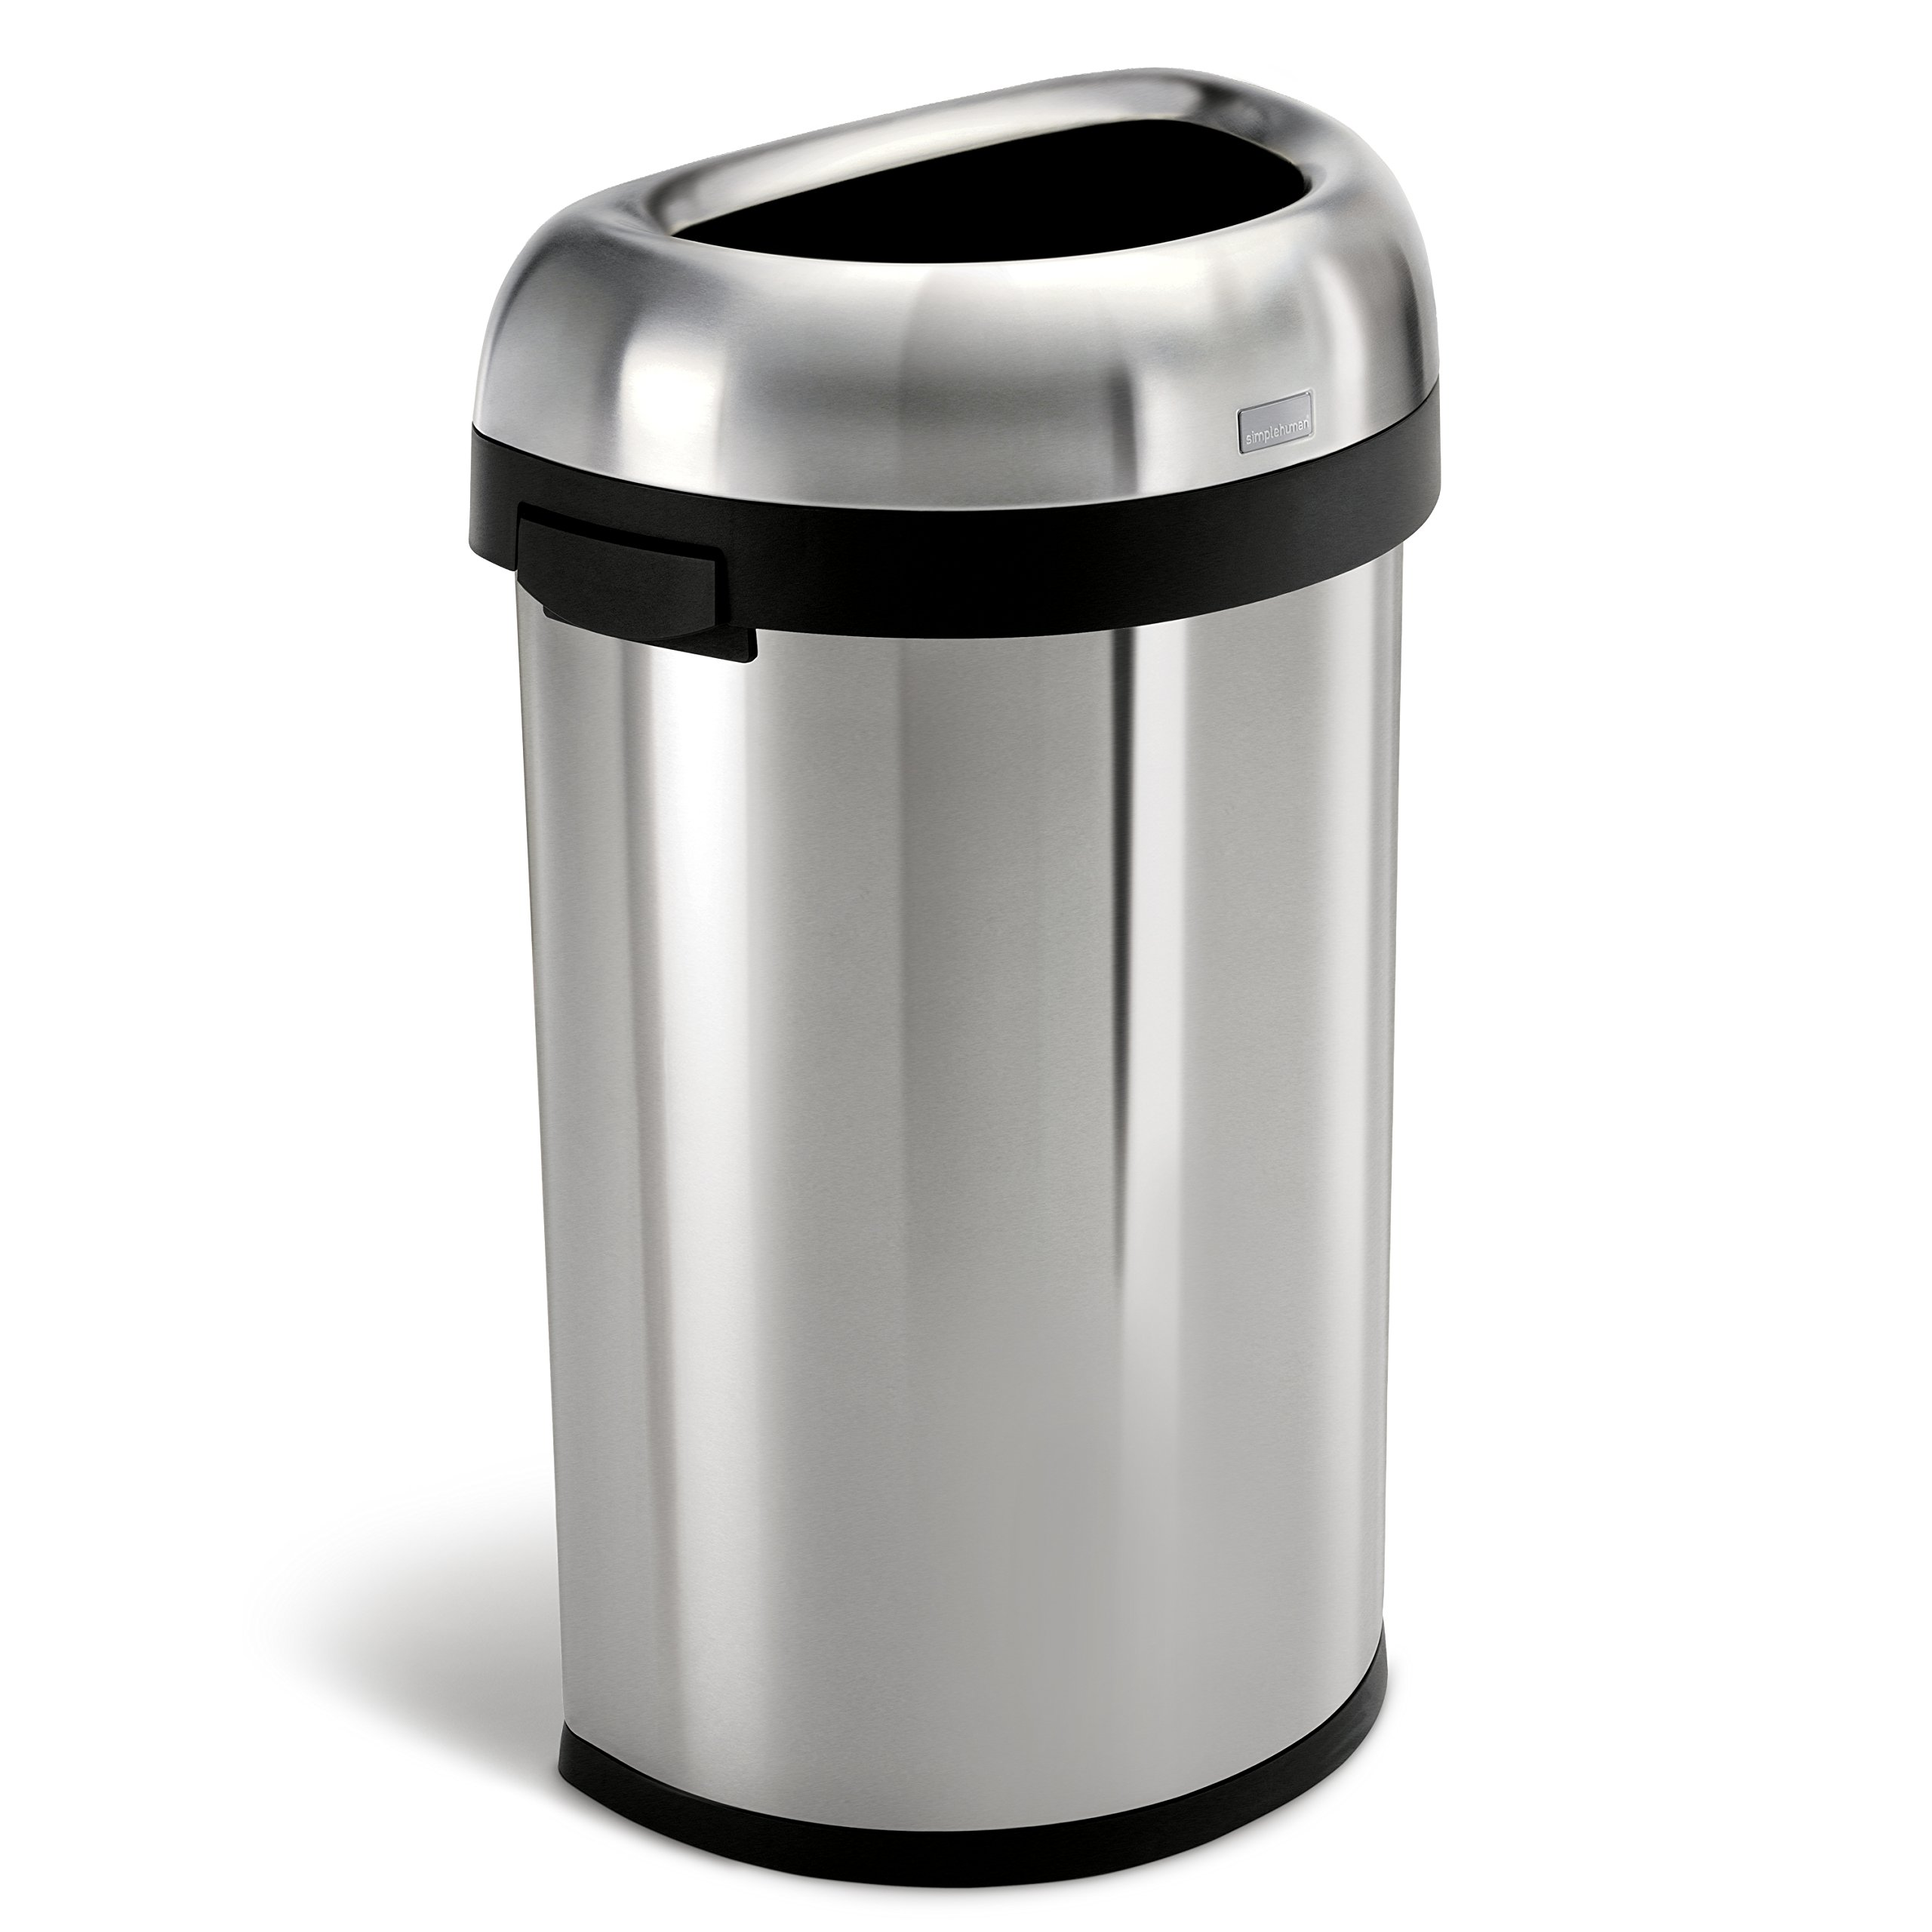 simplehuman Semi-Round Open Trash Can, Commercial Grade, Heavy Gauge Stainless Steel, 60 L / 16 Gal by simplehuman